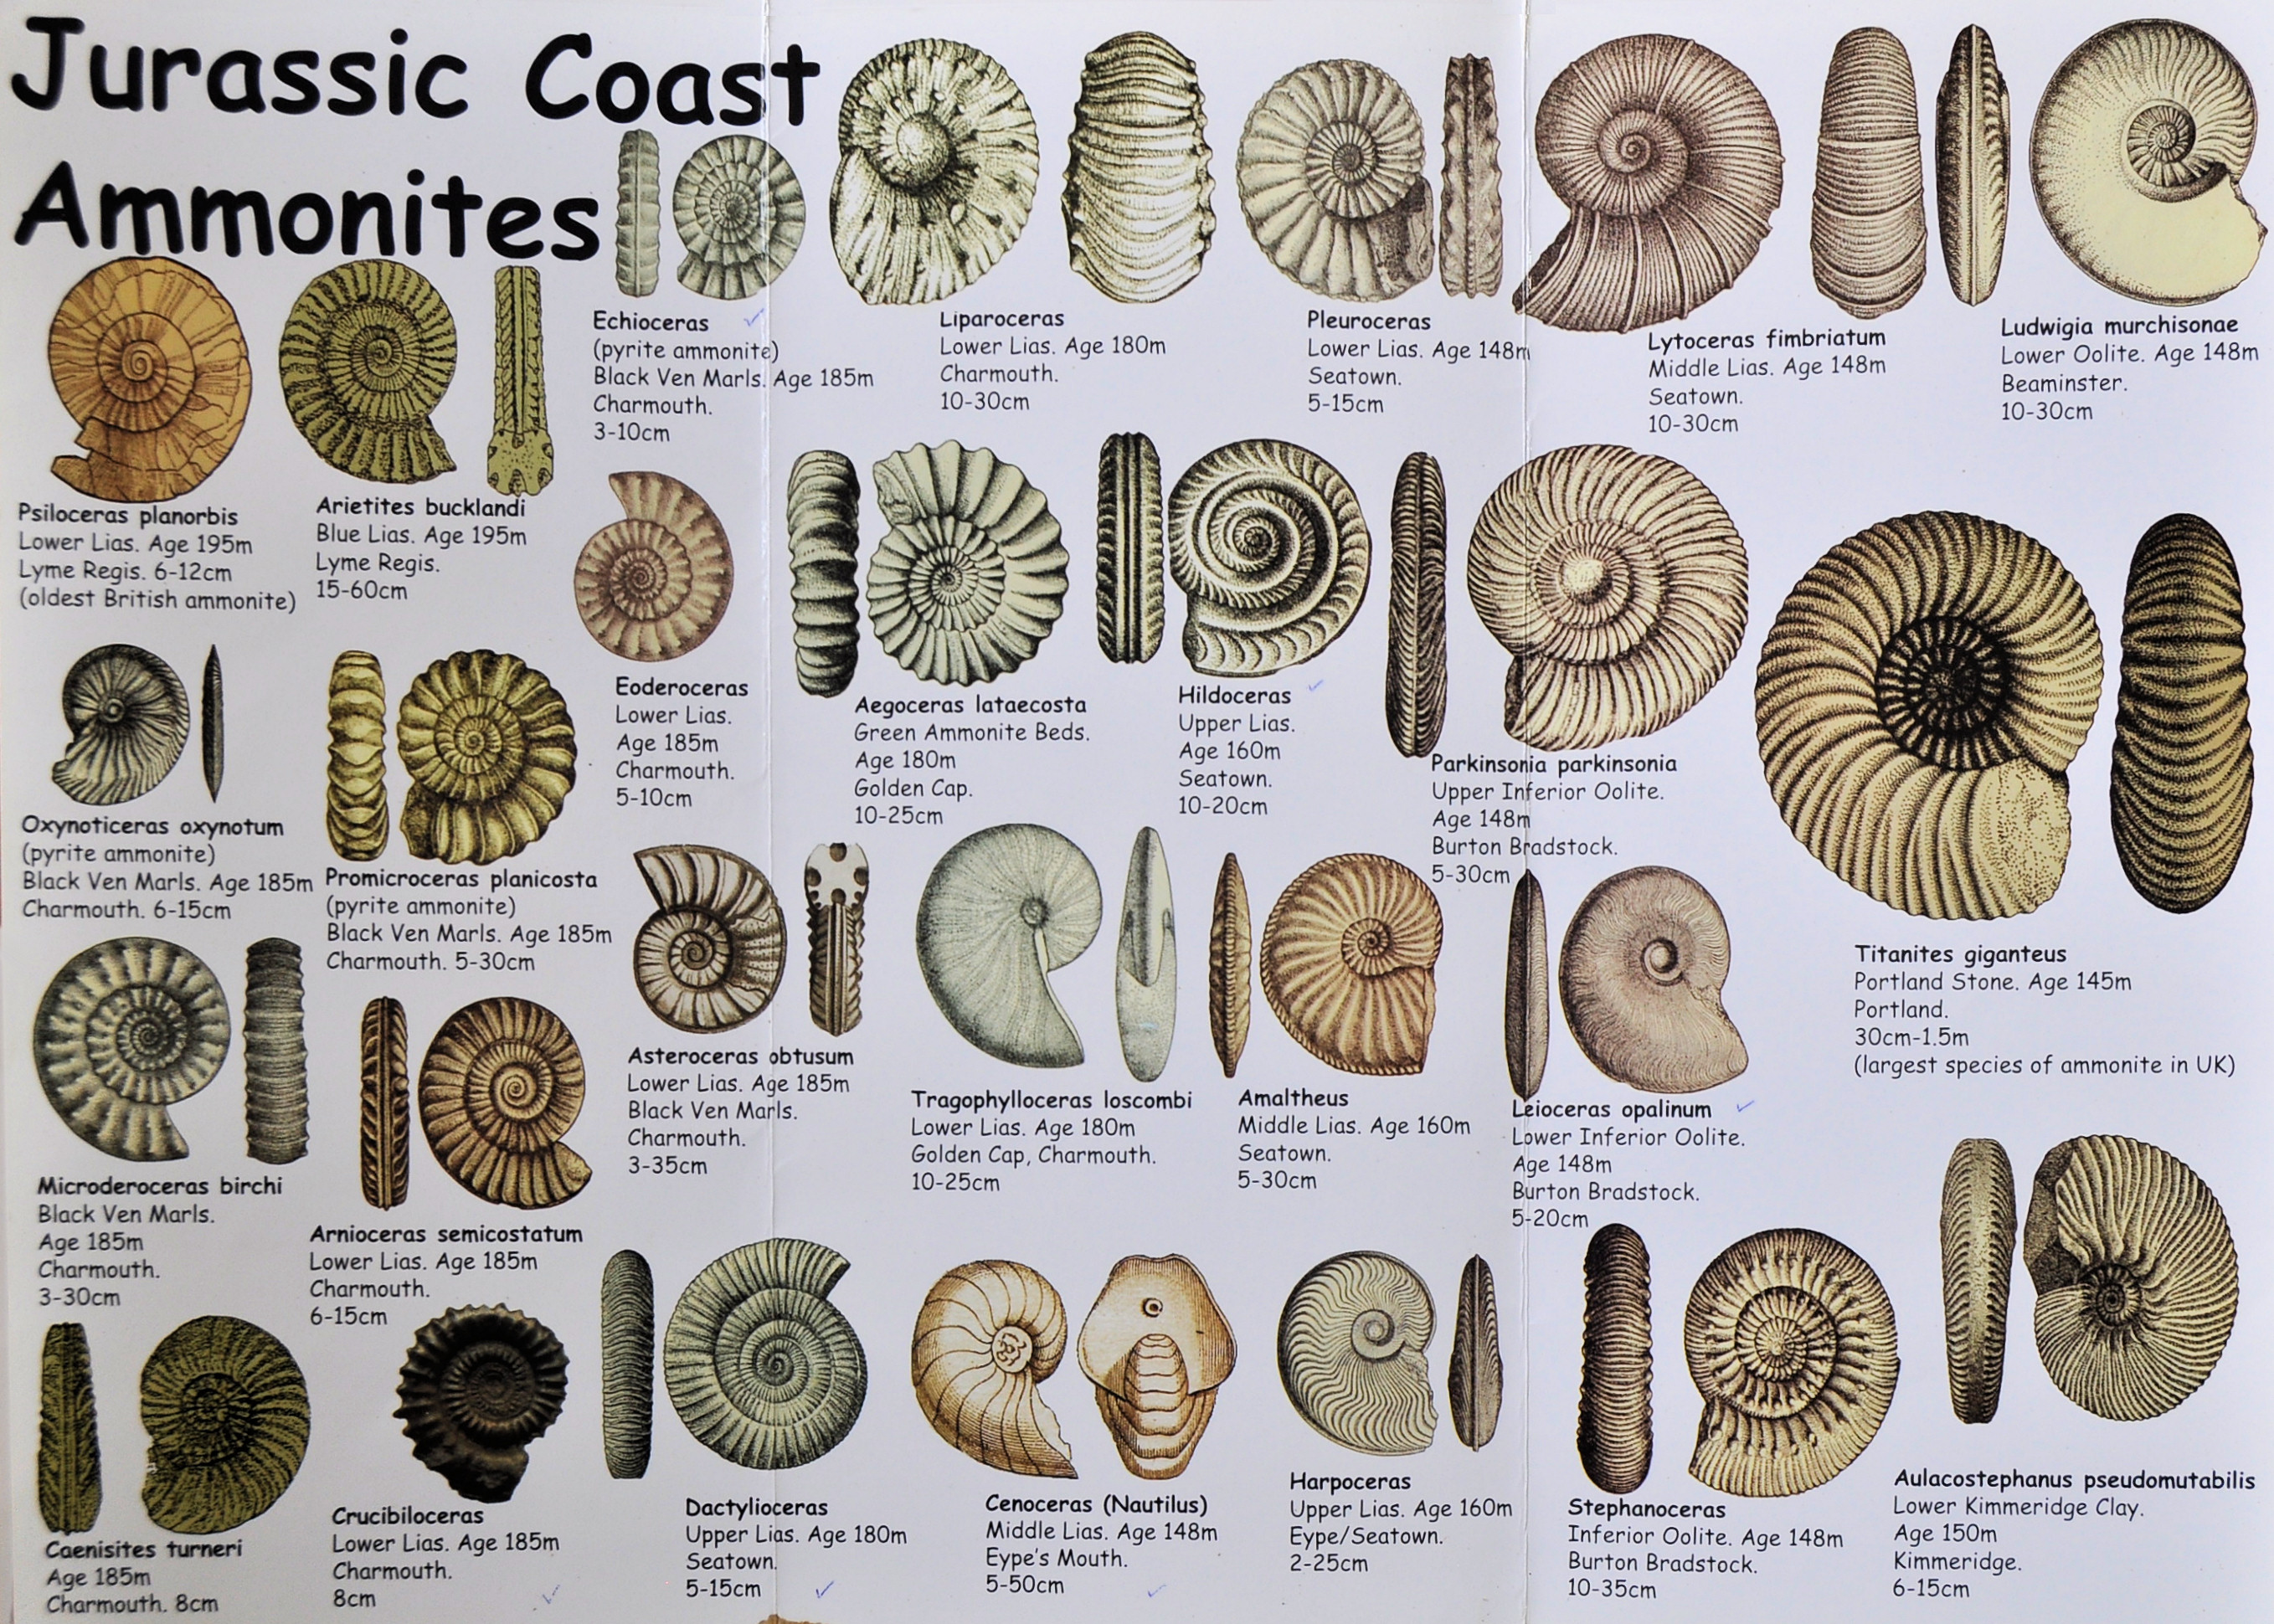 Jurassic Coast Ammonite